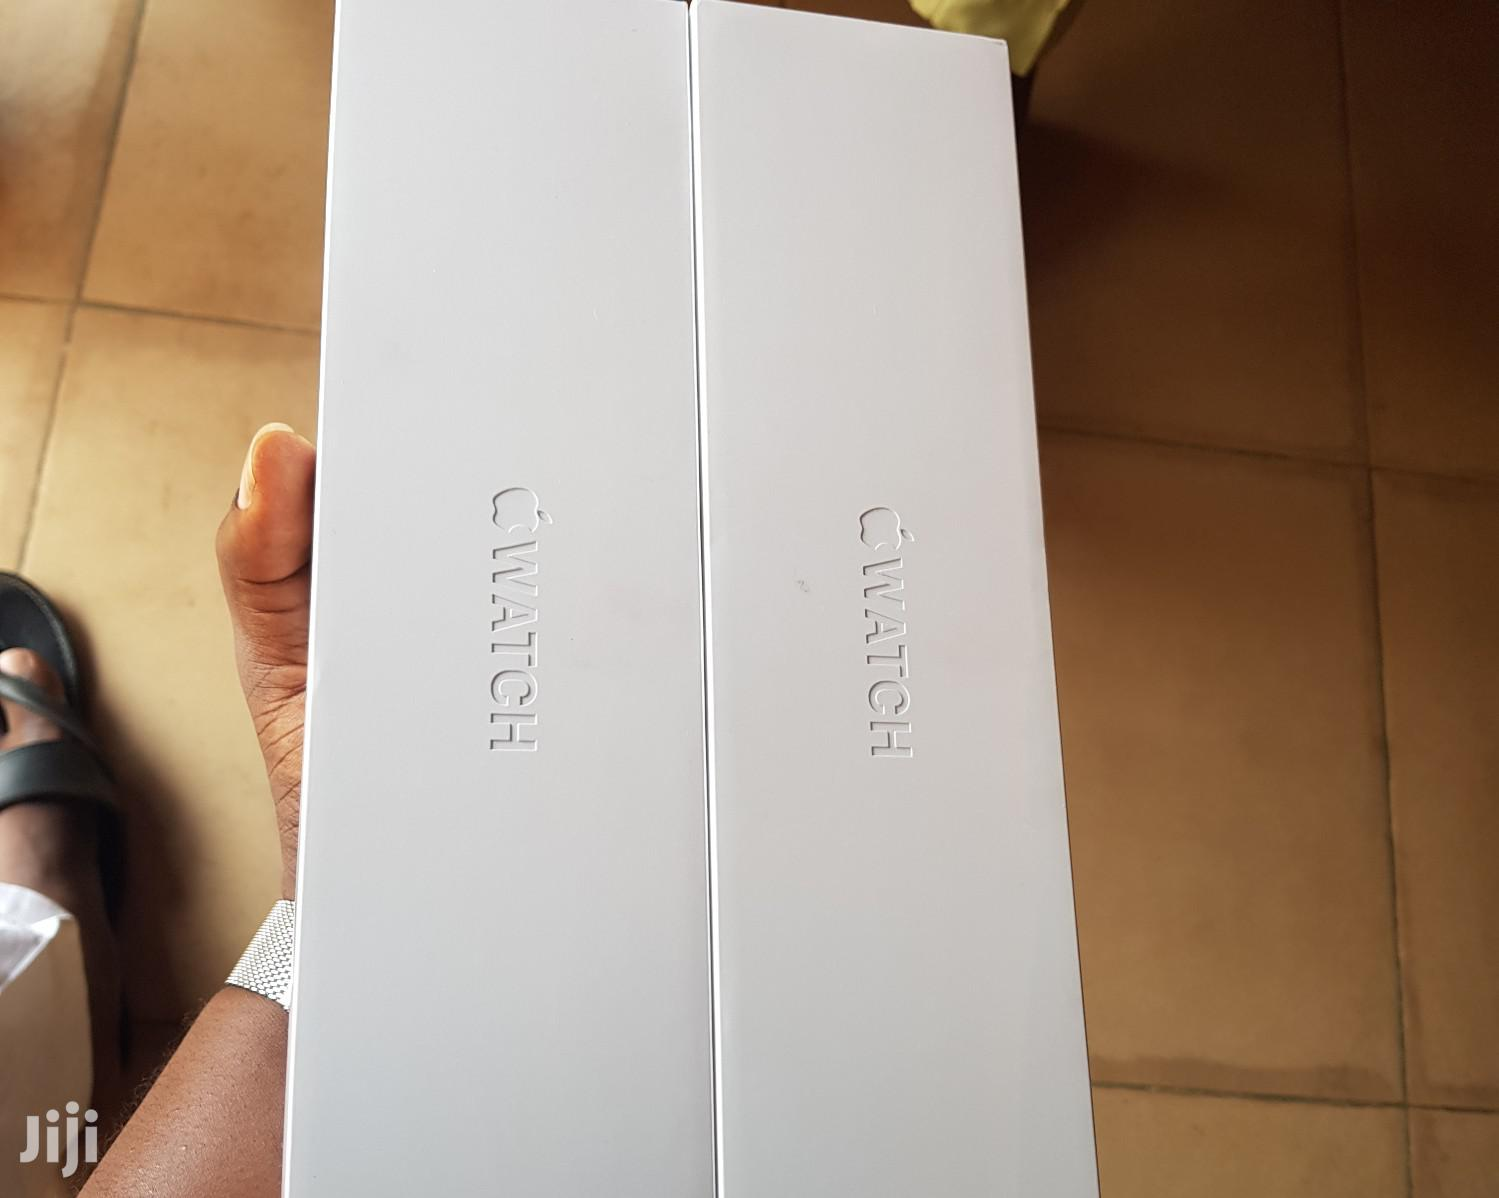 Brand New Iwatch Series 4 44mm Gps+ Cellular | Smart Watches & Trackers for sale in Abeokuta South, Ogun State, Nigeria